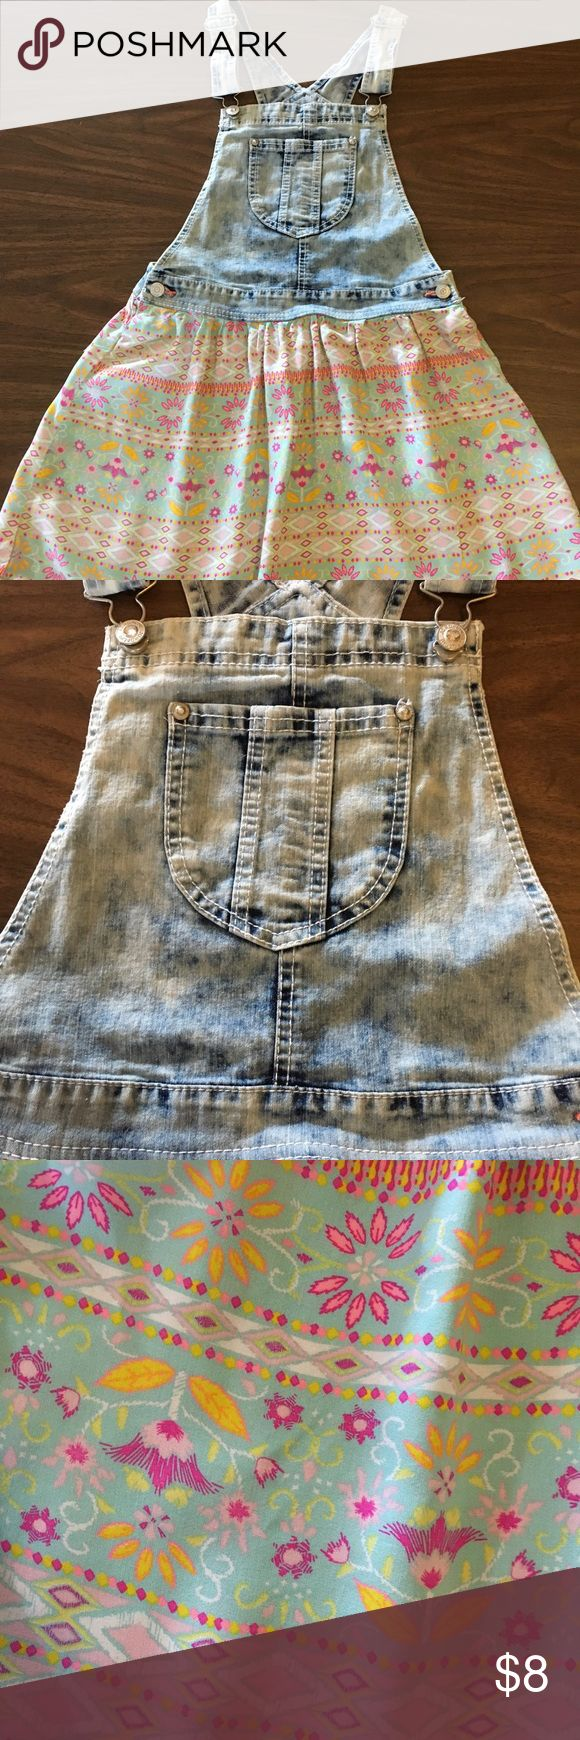 Girls denim overall dress Cute girls dress! Perfect for school paired with t-shirt underneath. (See other t-shirt post) top is denim overall and bottom is flowy skirt with Pom-pom edging. Jordache Dresses Casual